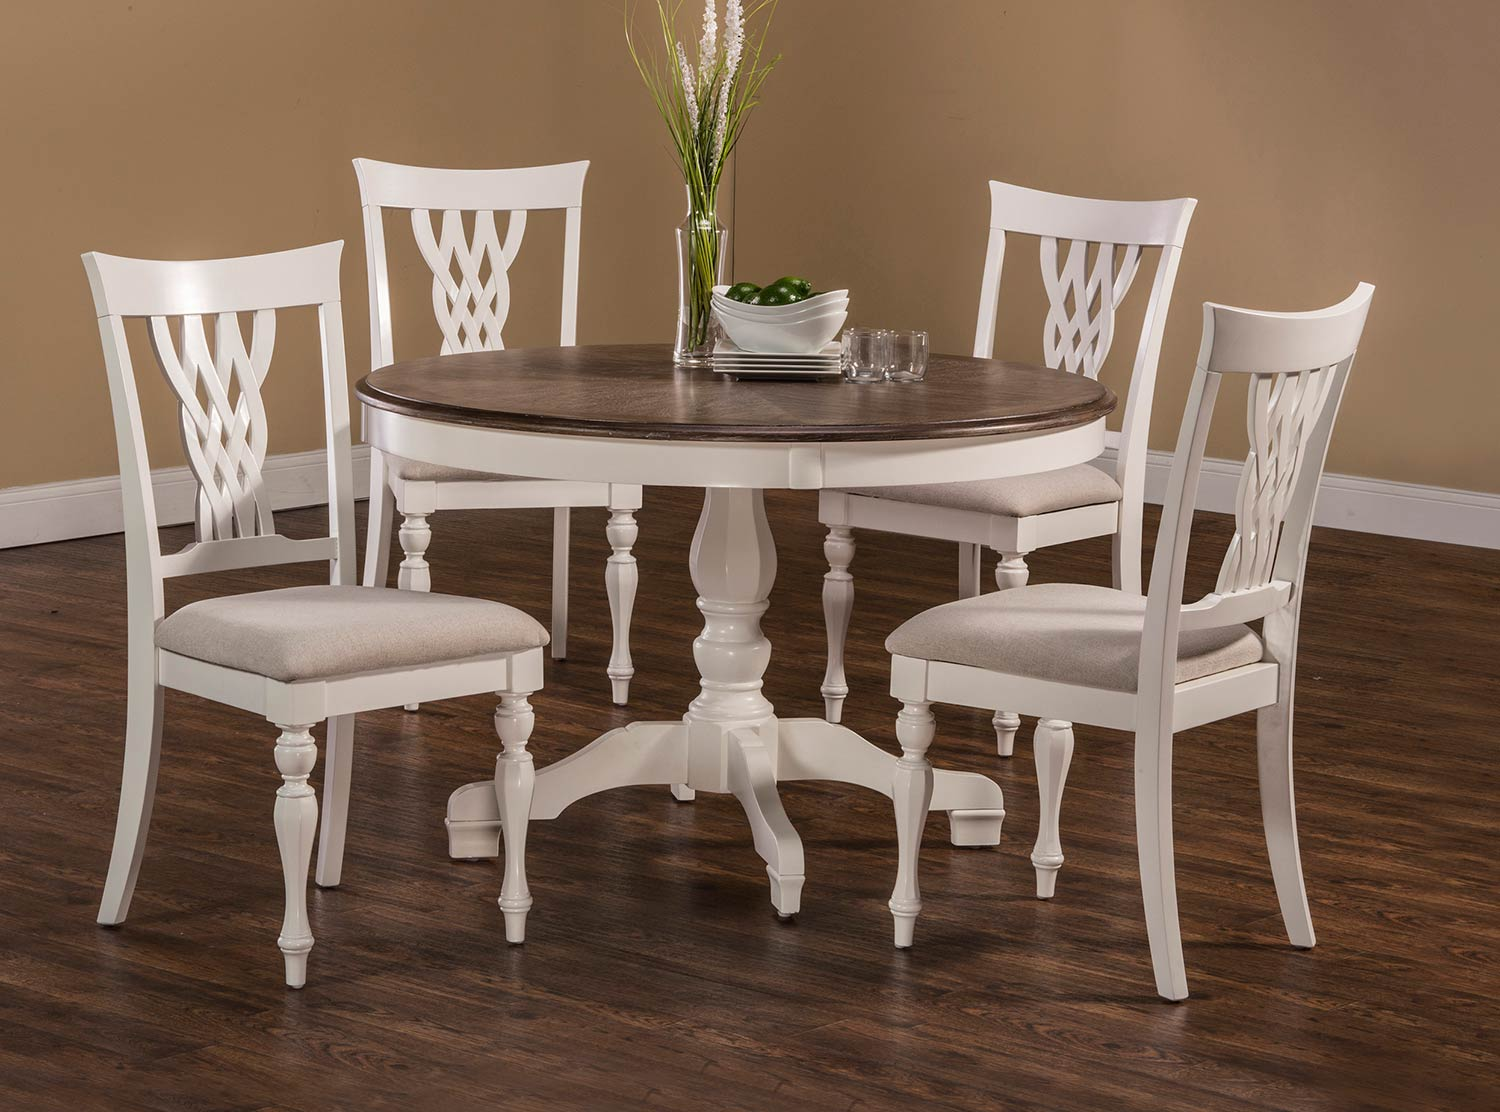 Hilale Bayberry Emby 5 Piece Round Dining Set White